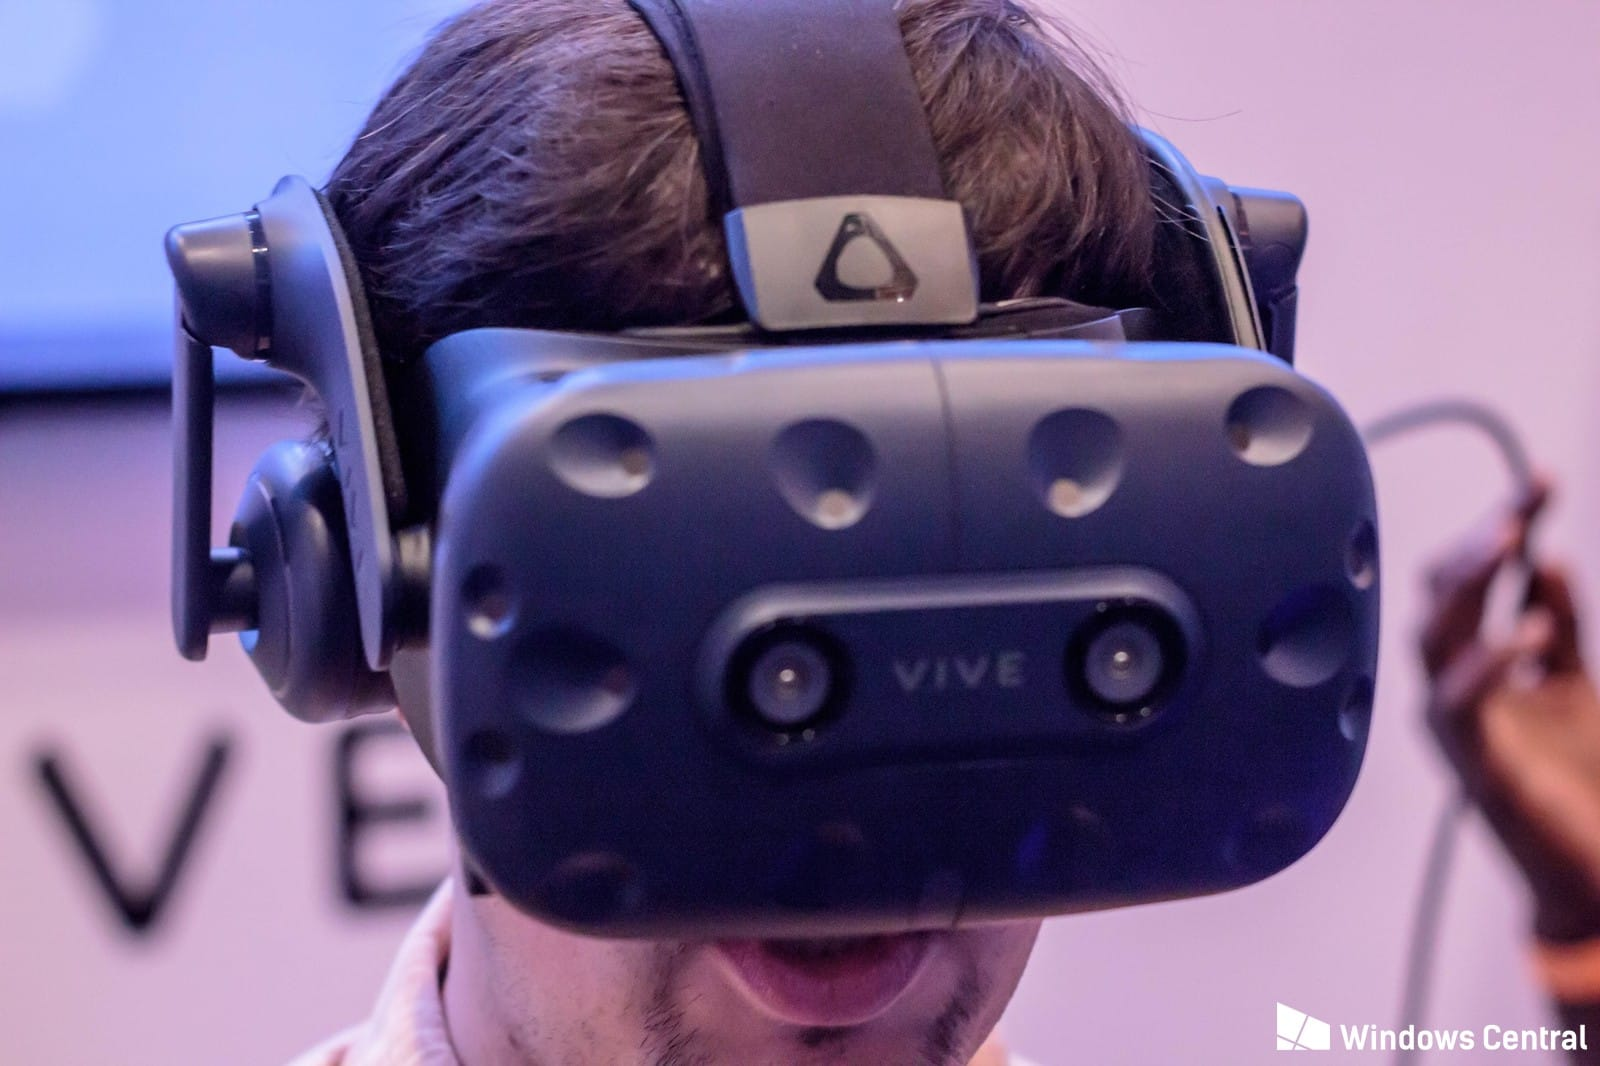 Will the HTC Vive Pro mark the end of gigantic VR headsets?